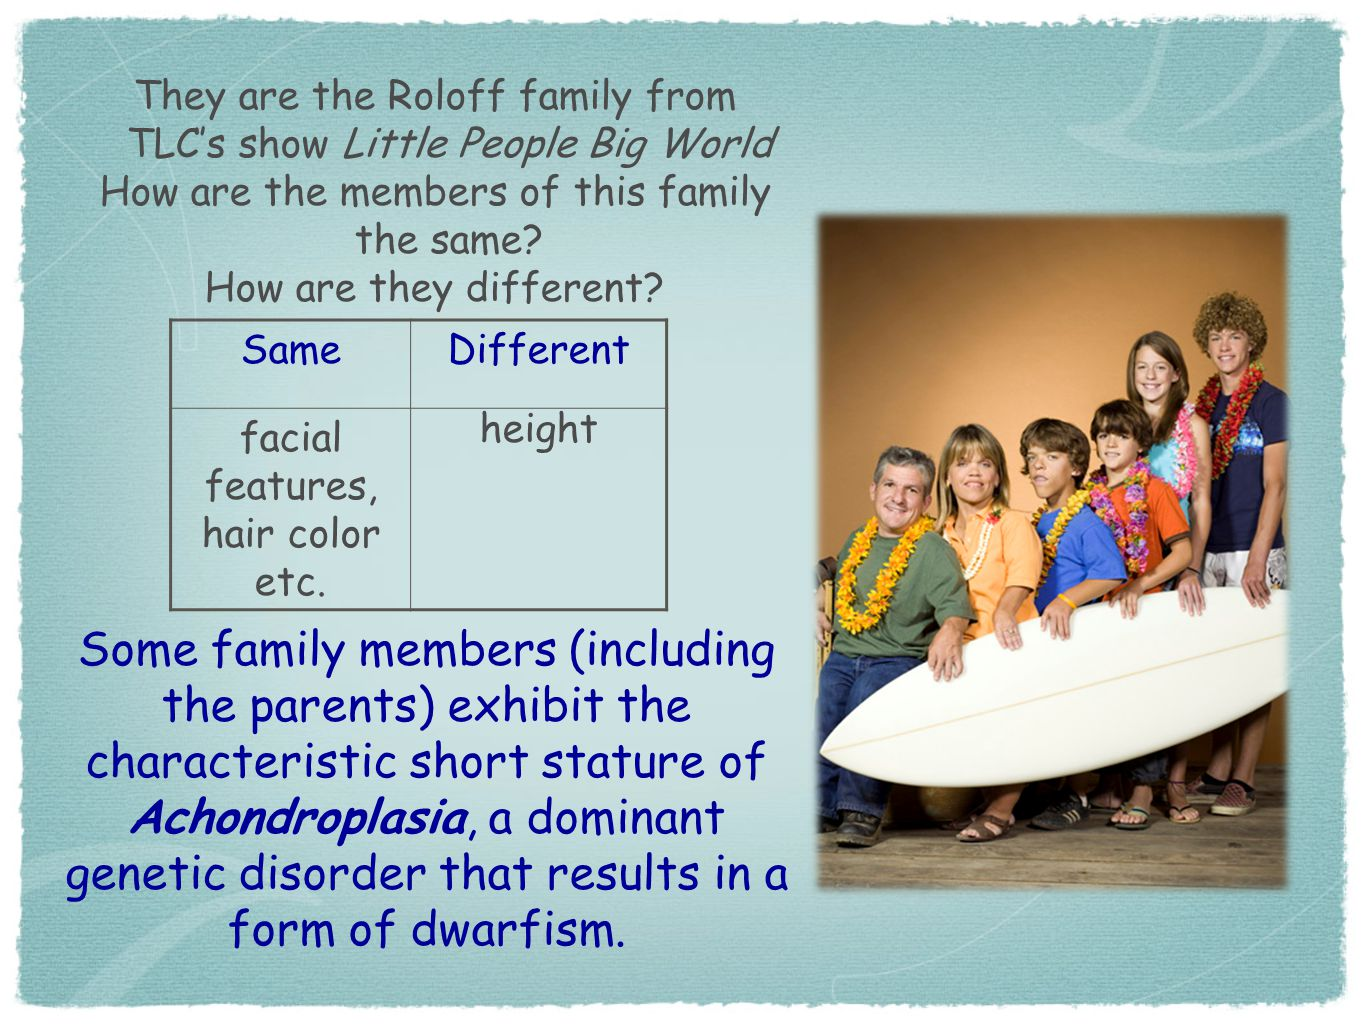 They are the Roloff family from TLC's show Little People Big World How are the members of this family the same? How are they different? SameDifferent